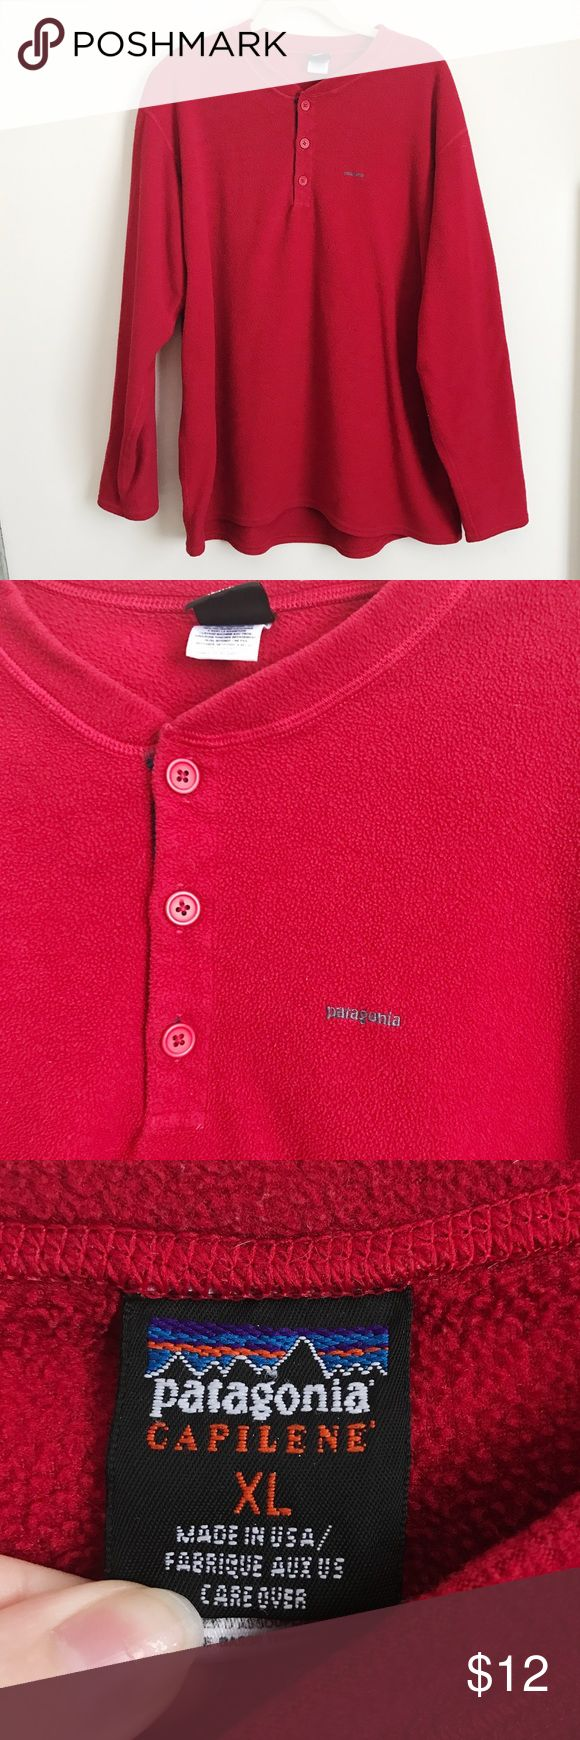 Patagonia Capilene Button Up Fleece Patagonia red button up fleece long sleeve. Size XL. There is a small hole on the back but it could be sewn or patched up. Patagonia Shirts Sweatshirts & Hoodies